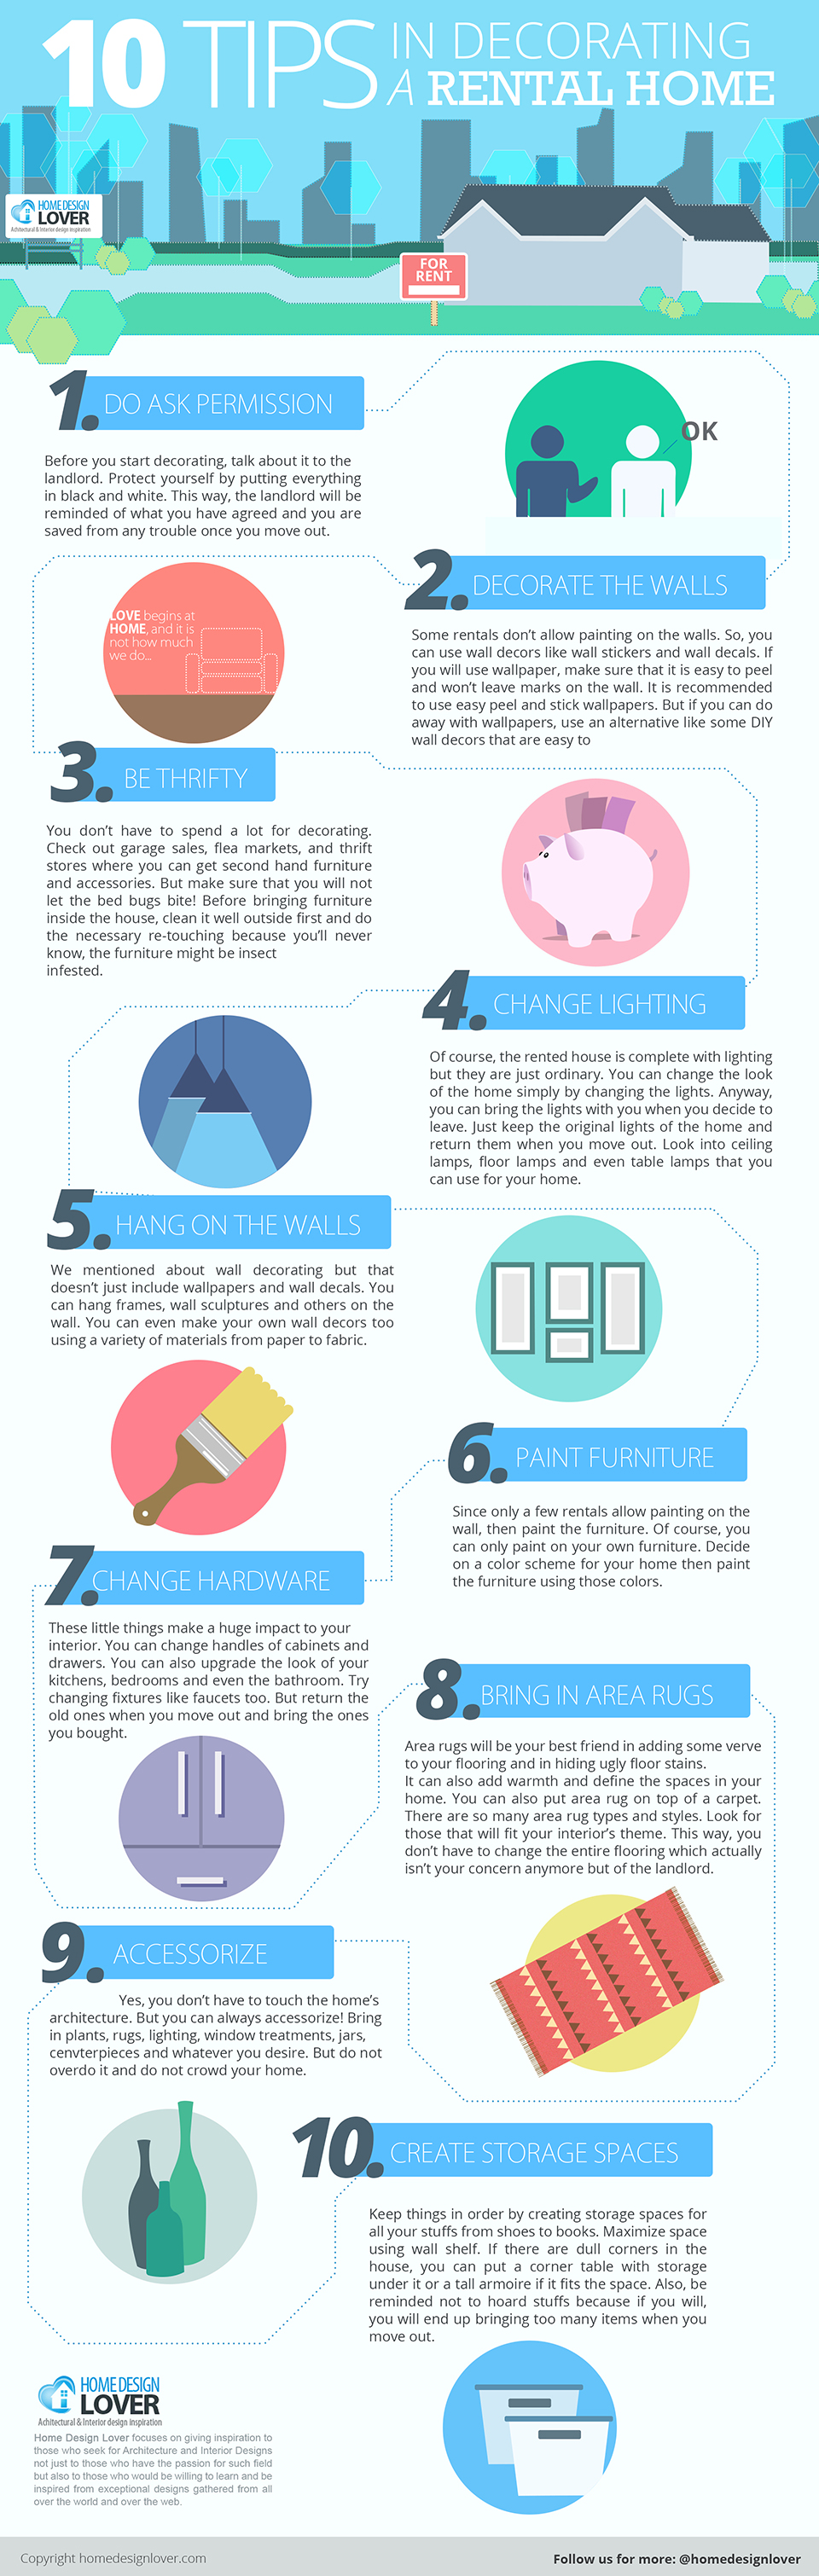 10 Tips in Decorating a Rental Home #infographic